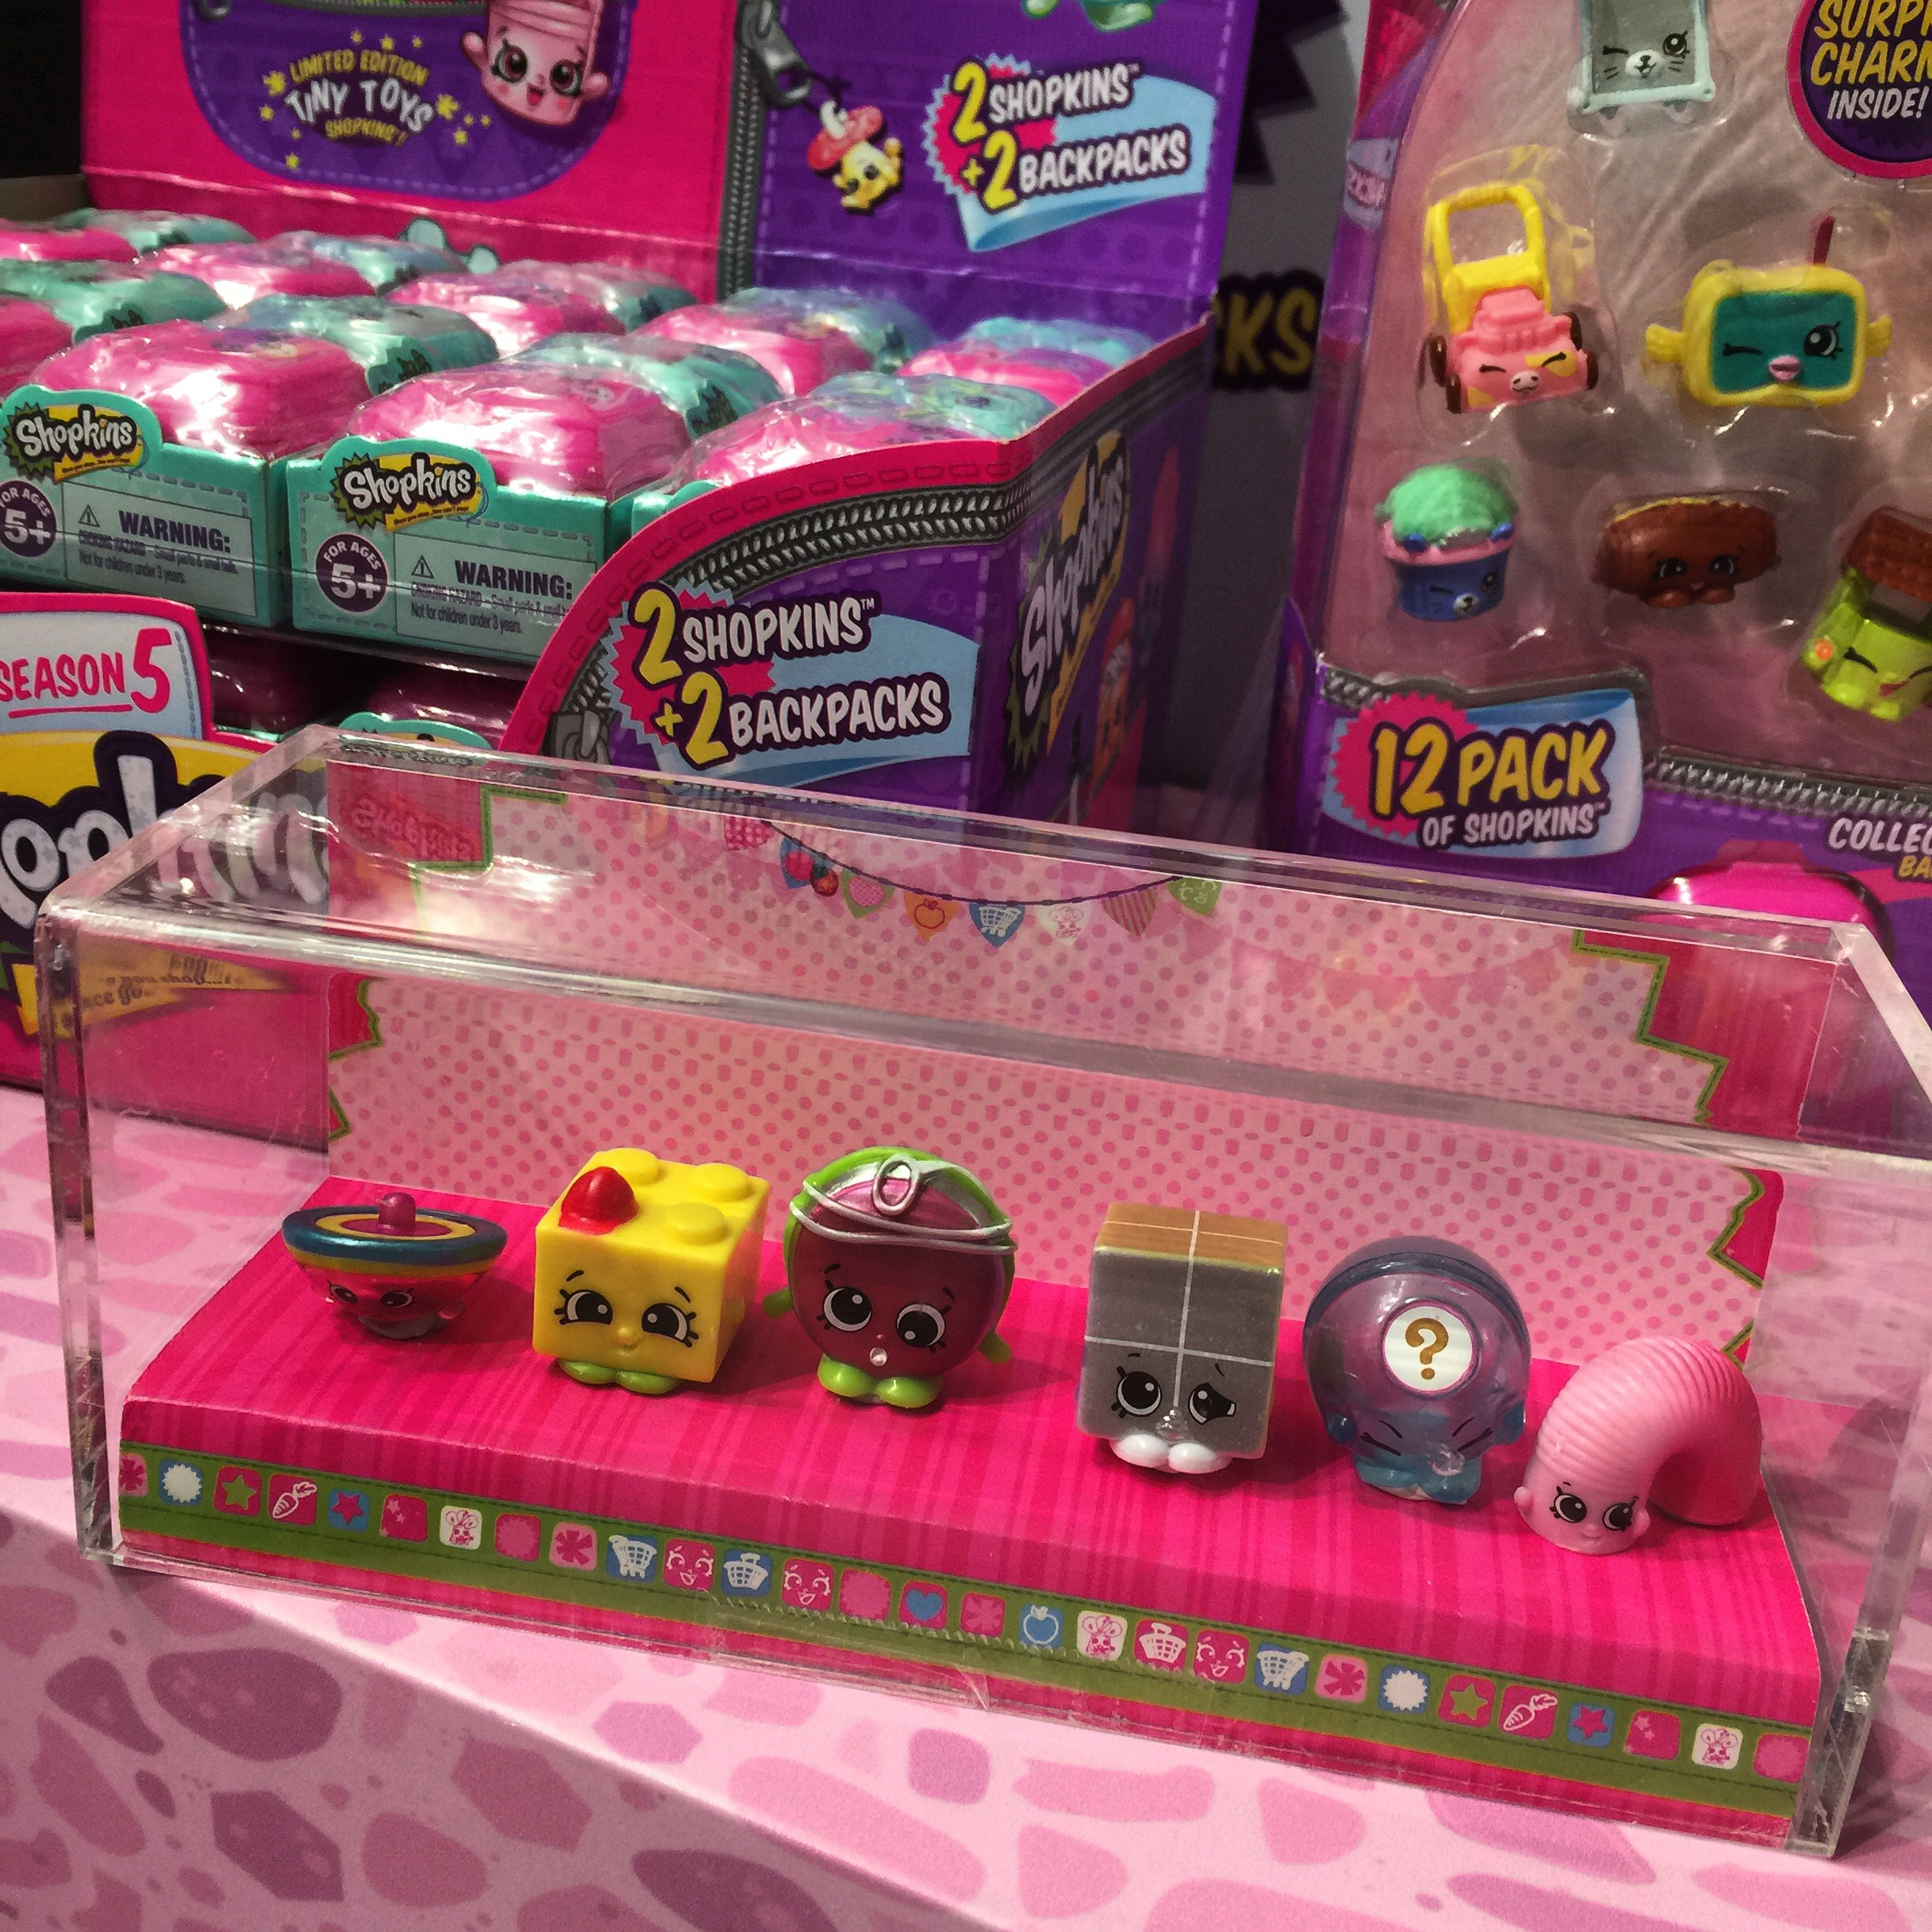 You Can Learn More About Shopkins On Their Official Website Here